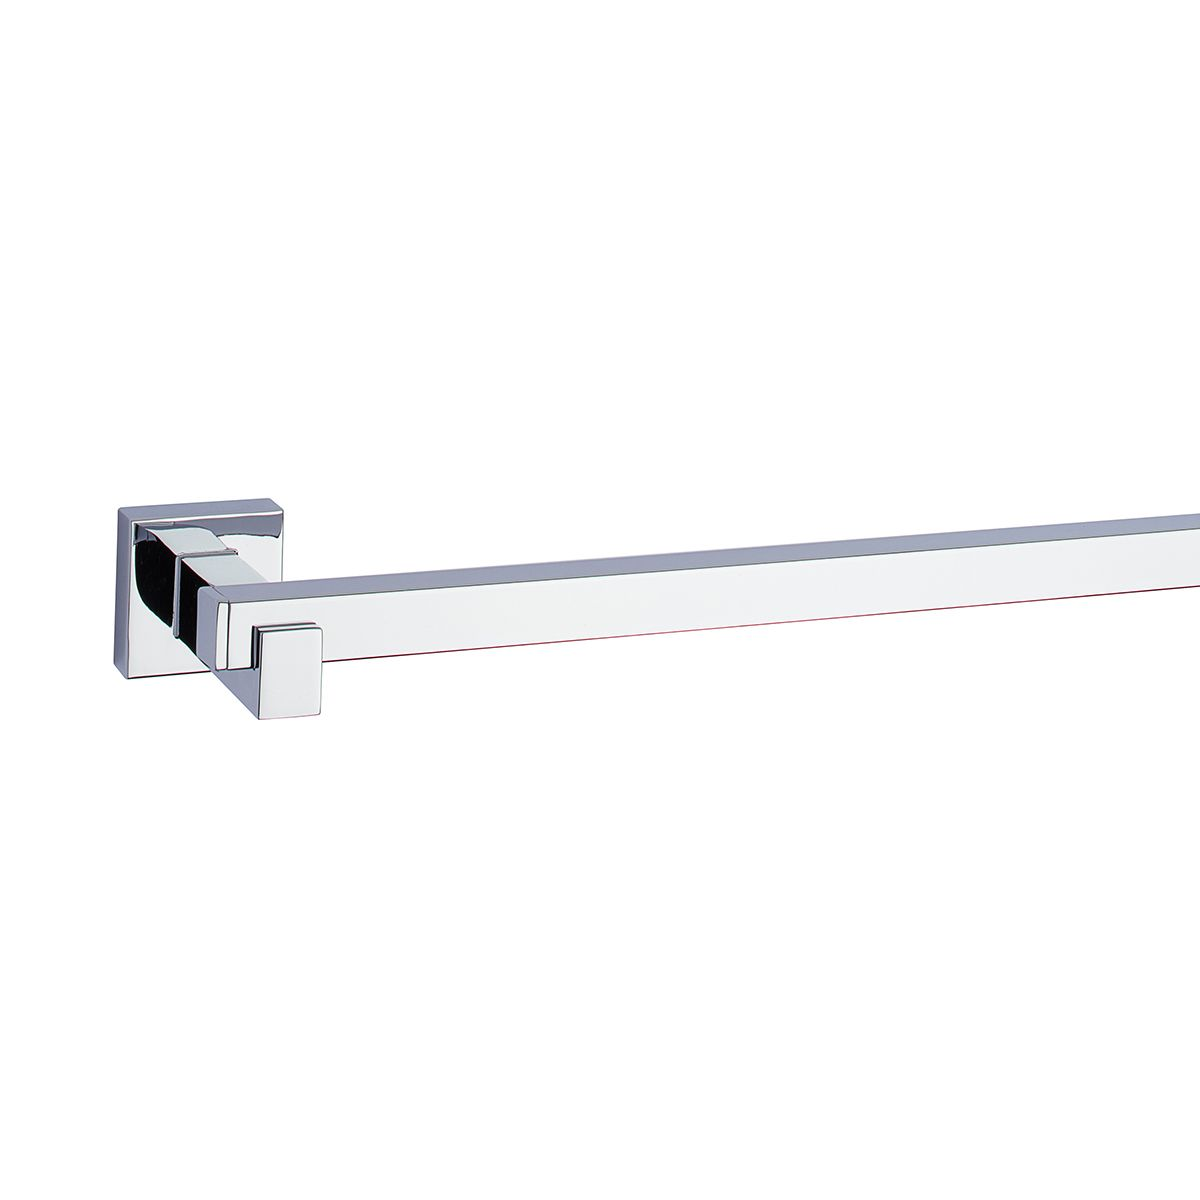 1948 SQUARE Towel Bar — Polished Chrome